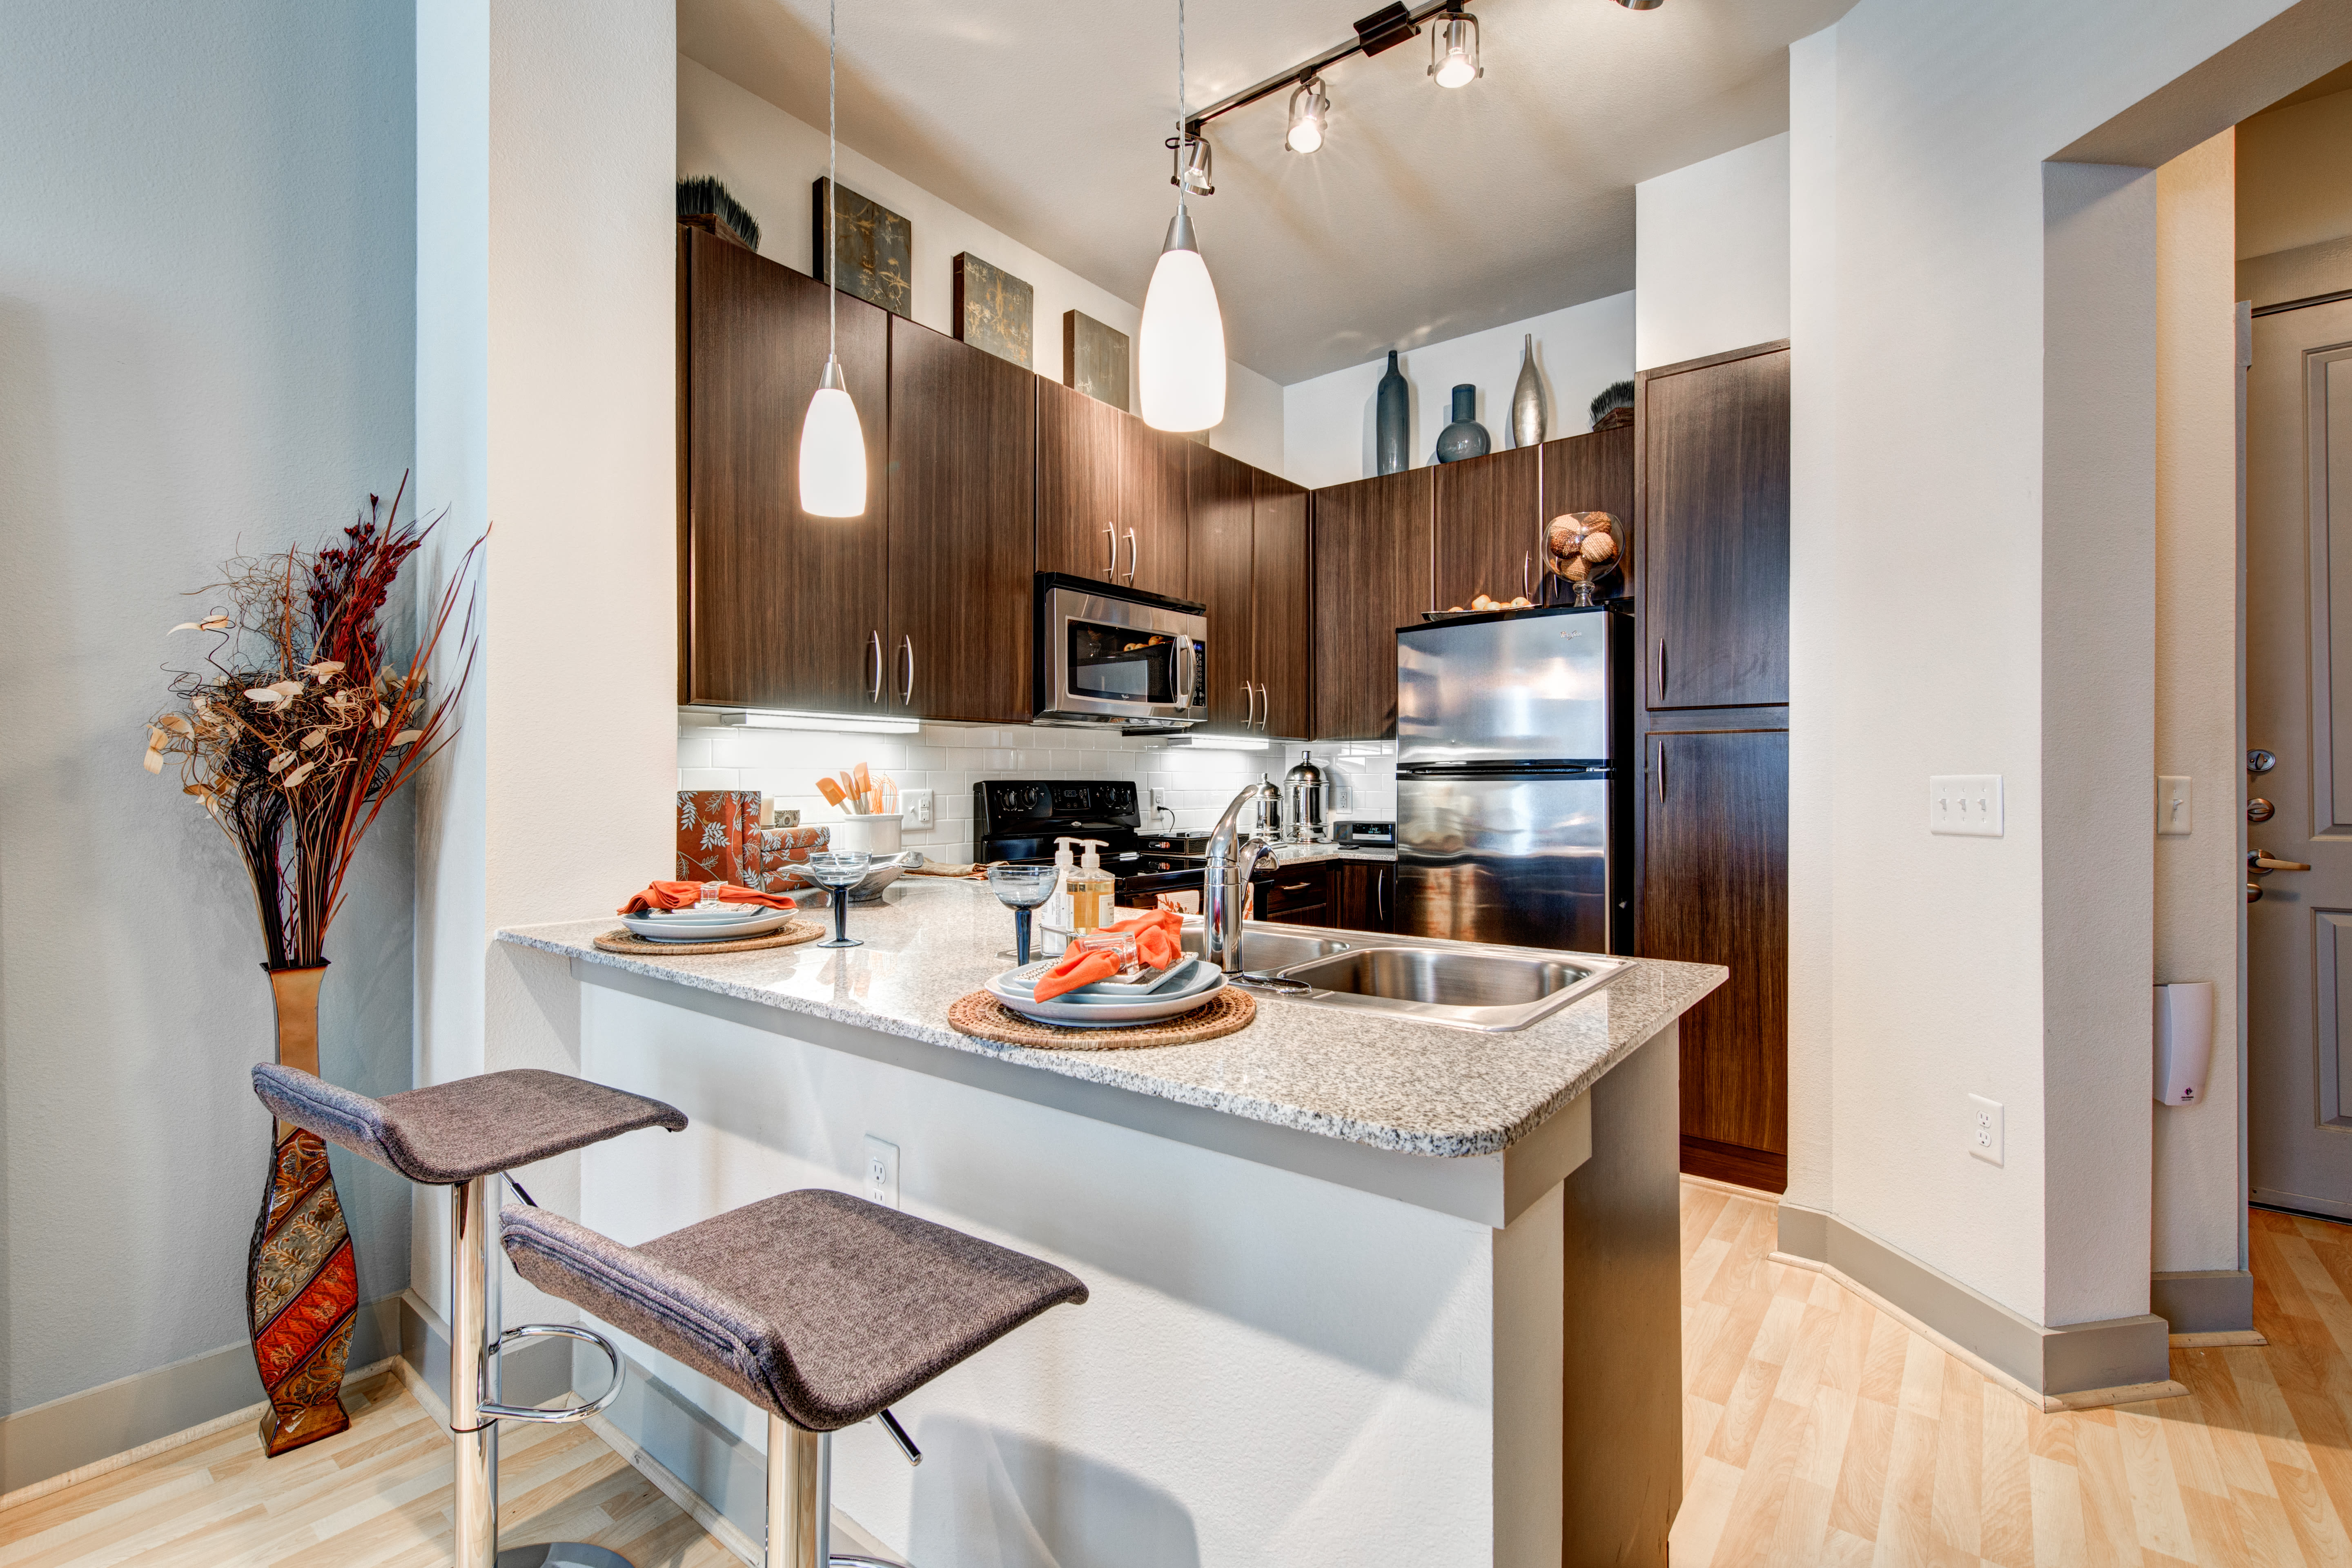 Luxury apartments for rent in Houston, TX